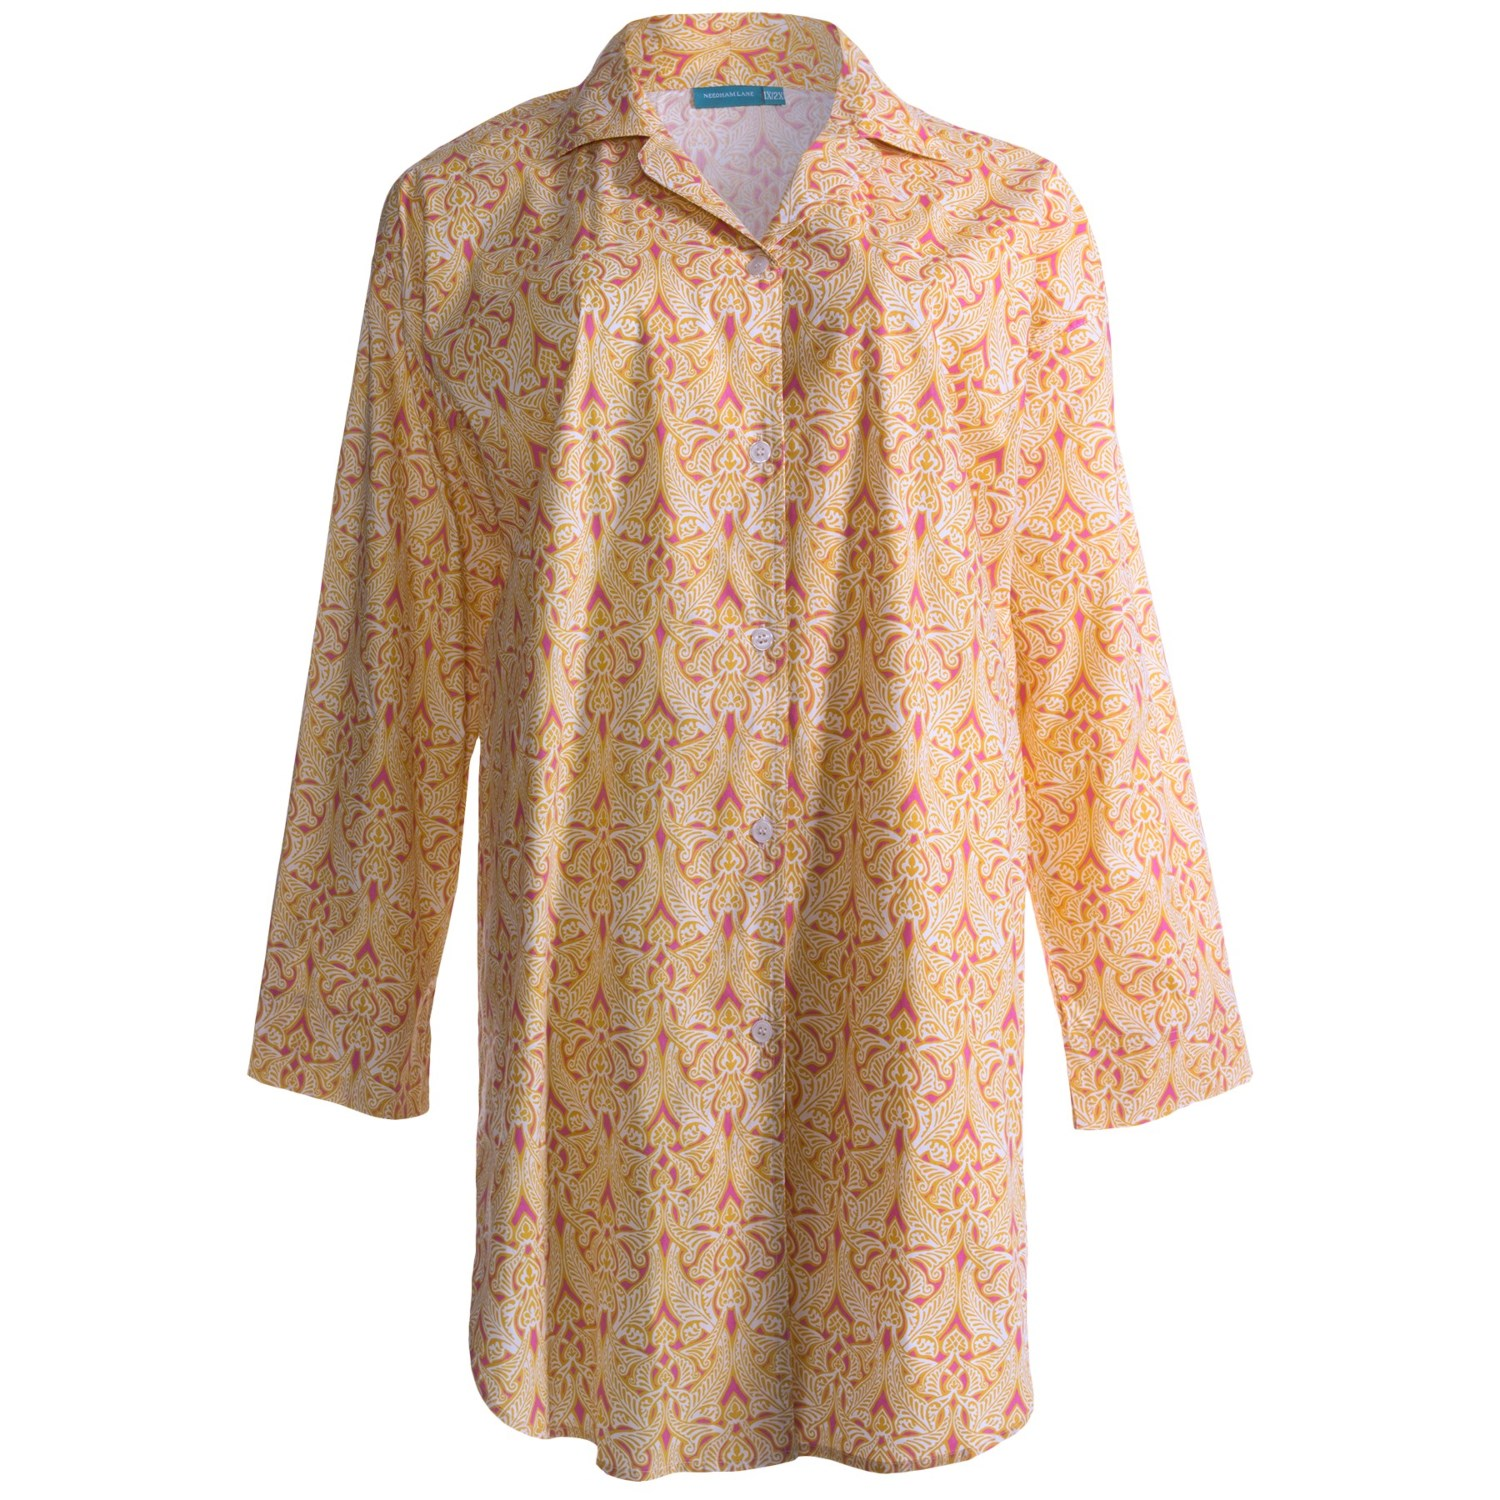 Buy Nightgowns and Nightshirts at Macy's and get FREE SHIPPING with $99 purchase! Great selection of nightgowns, sleep shirts & more sleepwear for women. you'll also find long sleeve sleep shirts that you can pair easily with flannel or cotton pajama pants. For an incredible selection of nightgowns and sleep shirts, browse the wide.